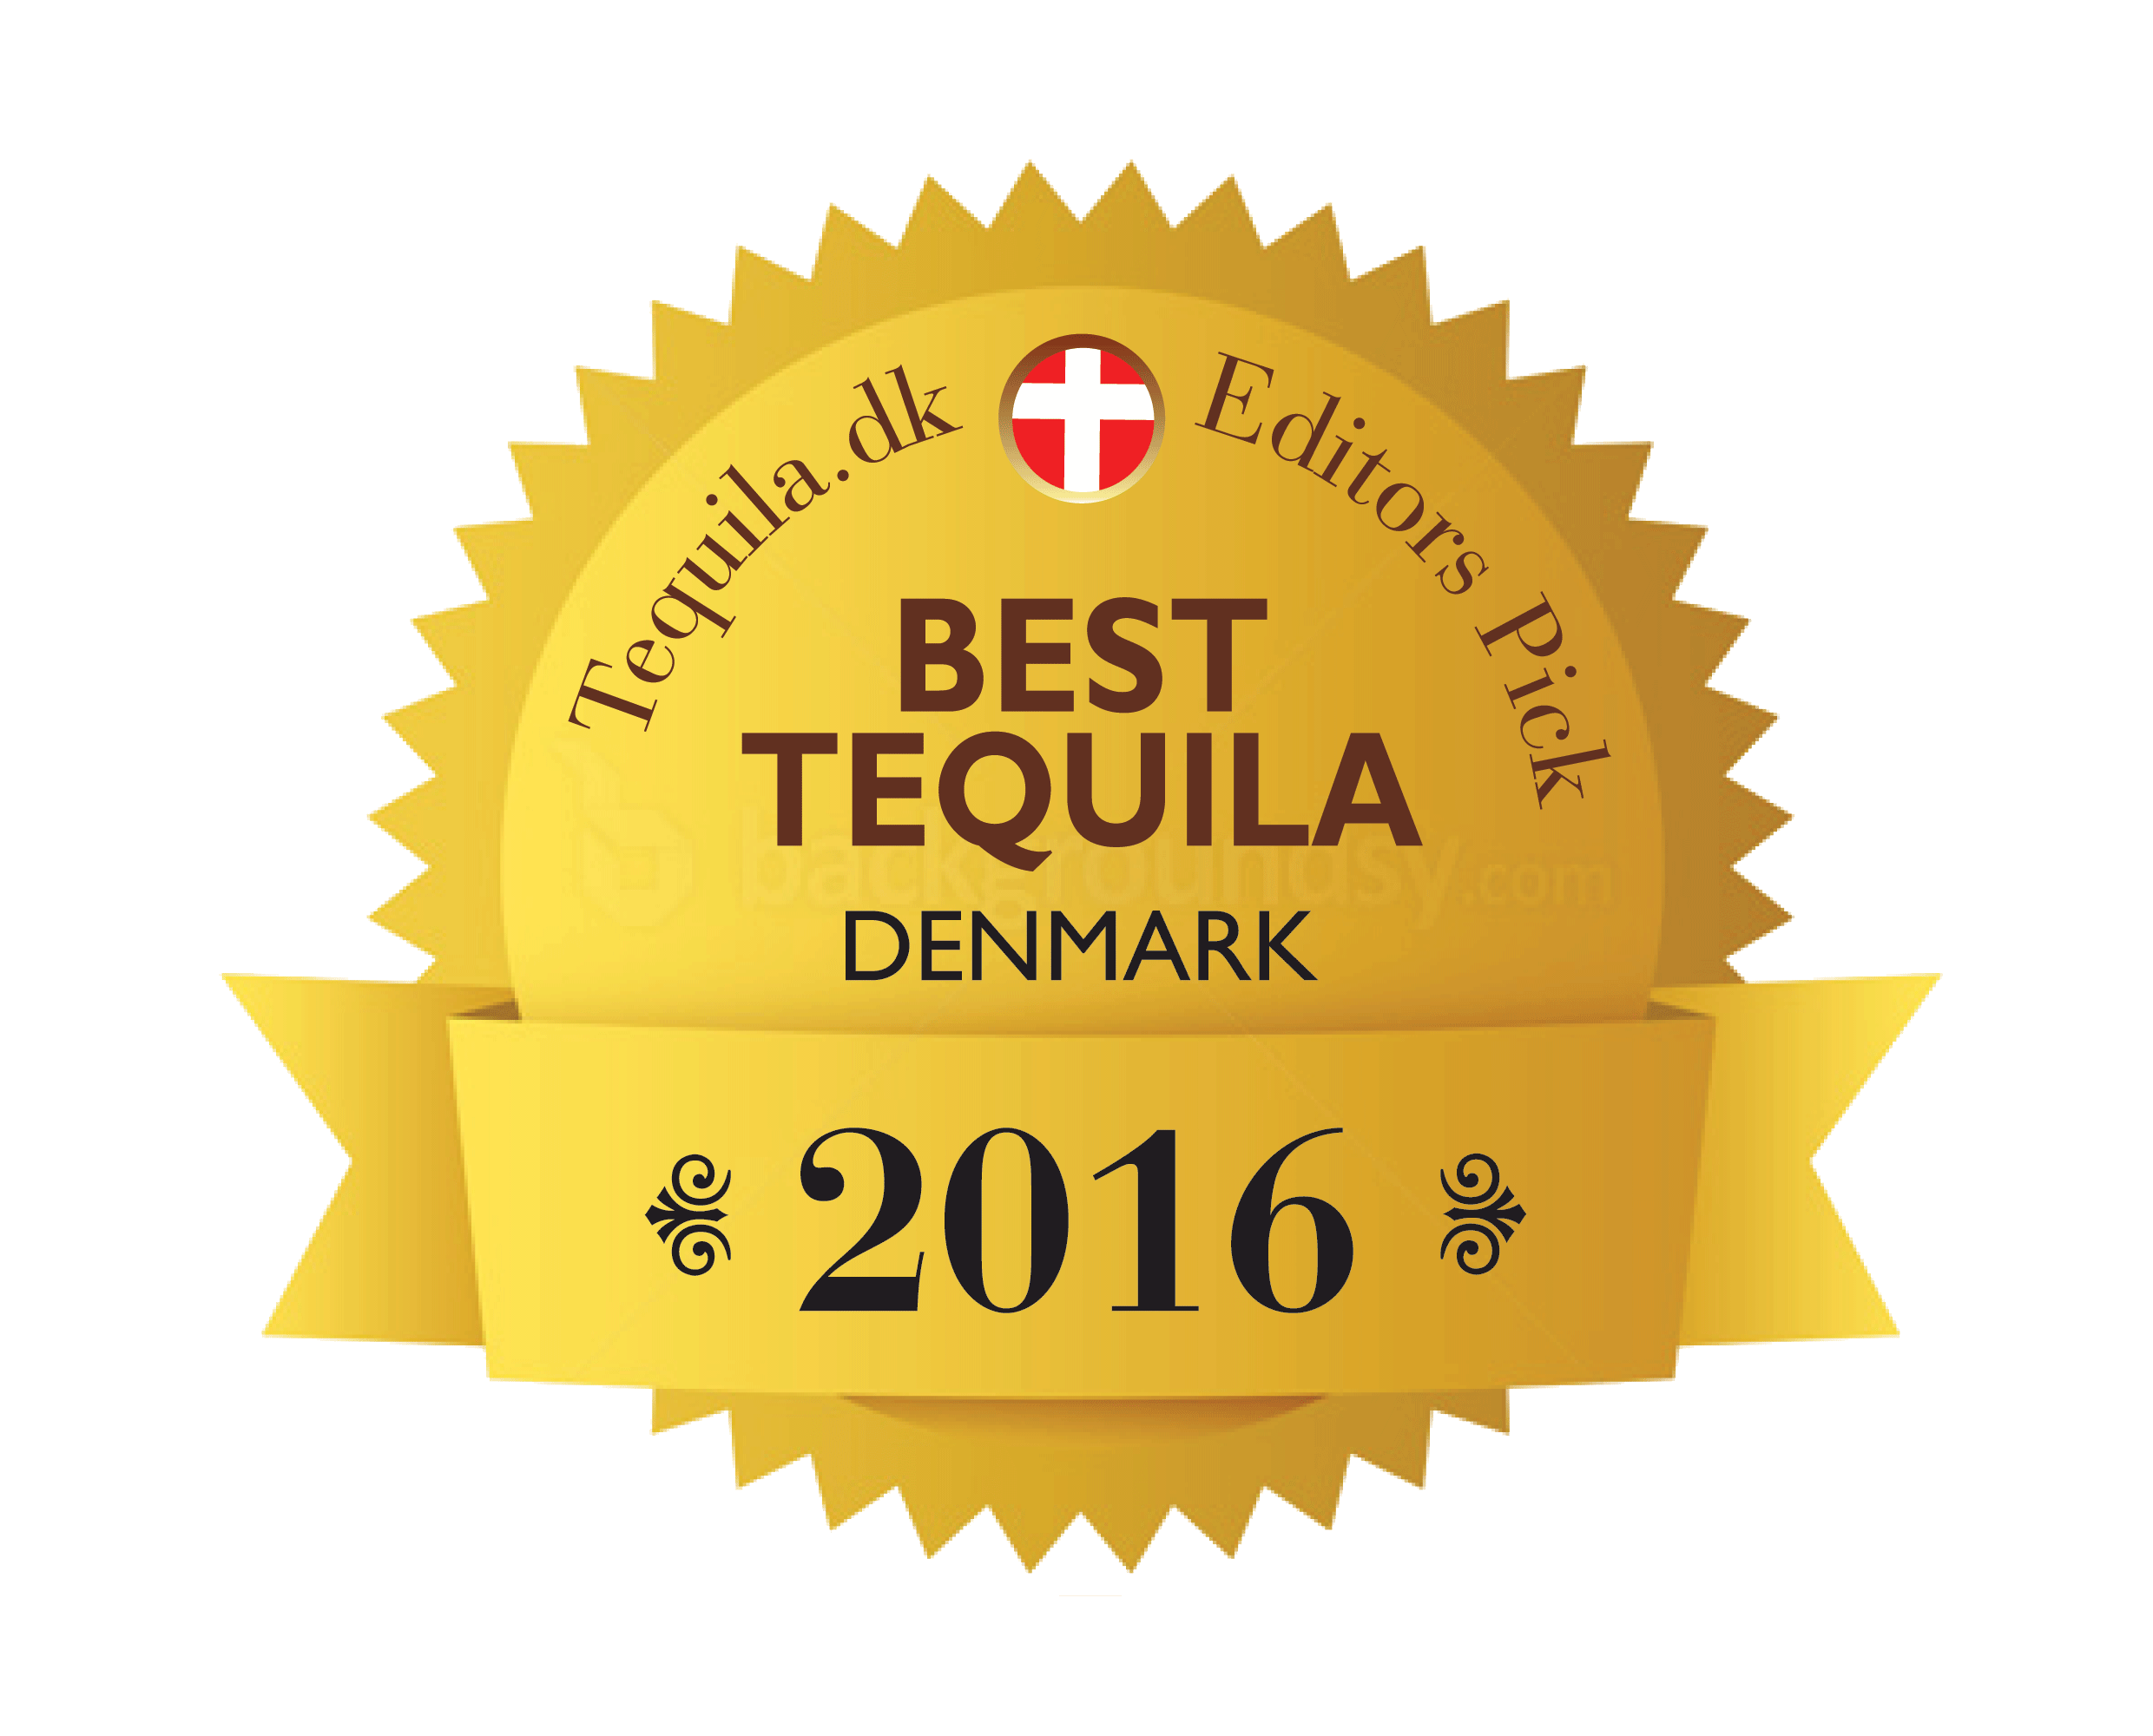 Best tequila in Denmark 2016